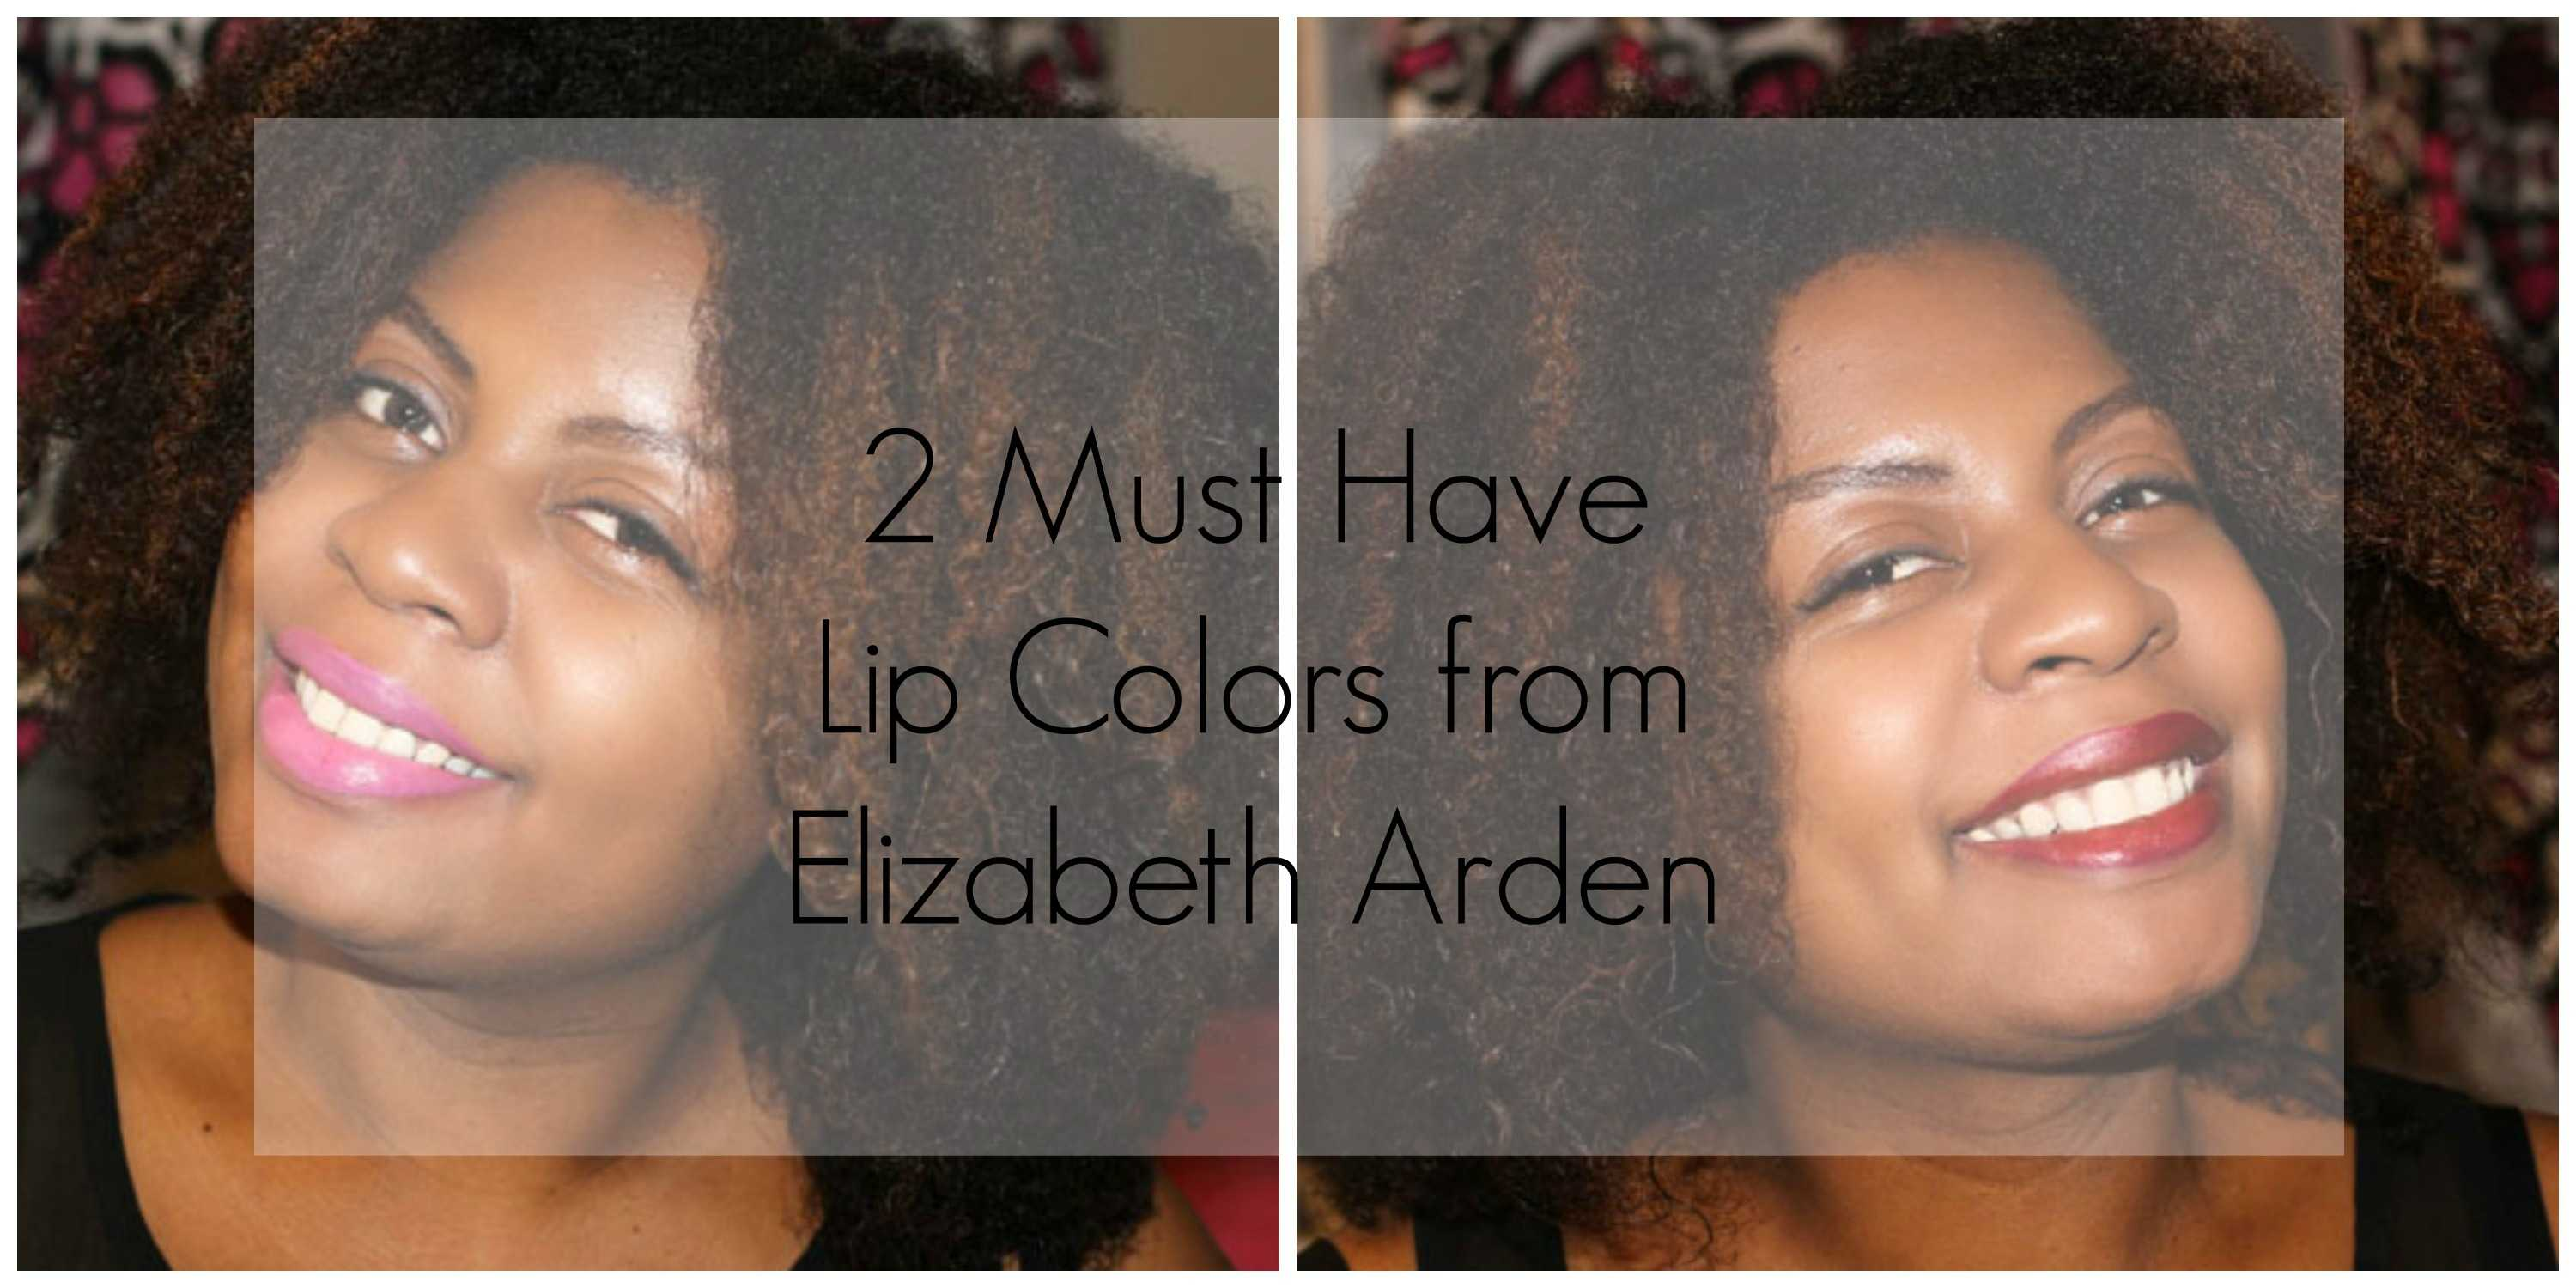 two-must-have-lip-colors-for-black-women